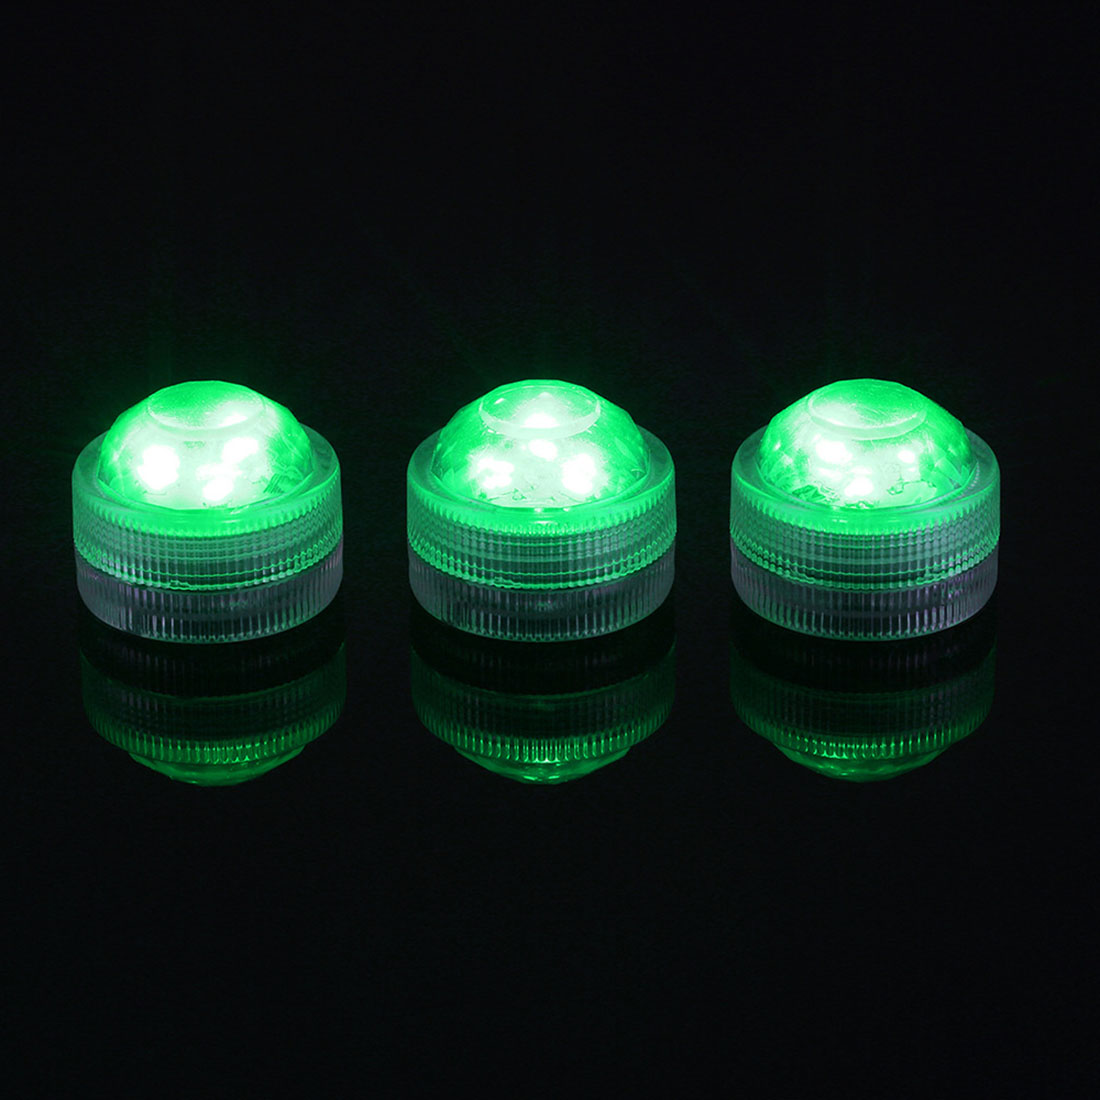 3PCS Waterproof Electronic Candle aquarium Diving lights Fish Tank Lamp night light for coffee bar wedding party supplies P20